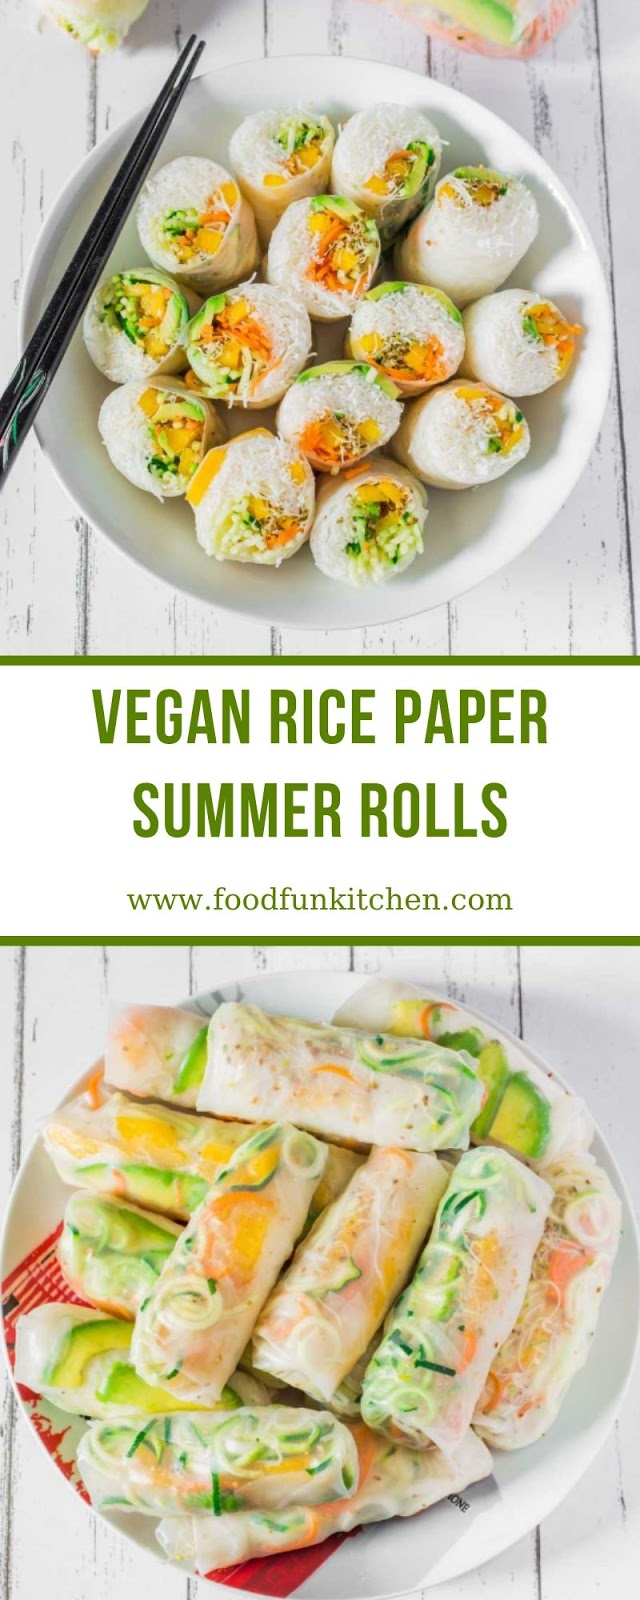 VEGAN RICE PAPER SUMMER ROLLS